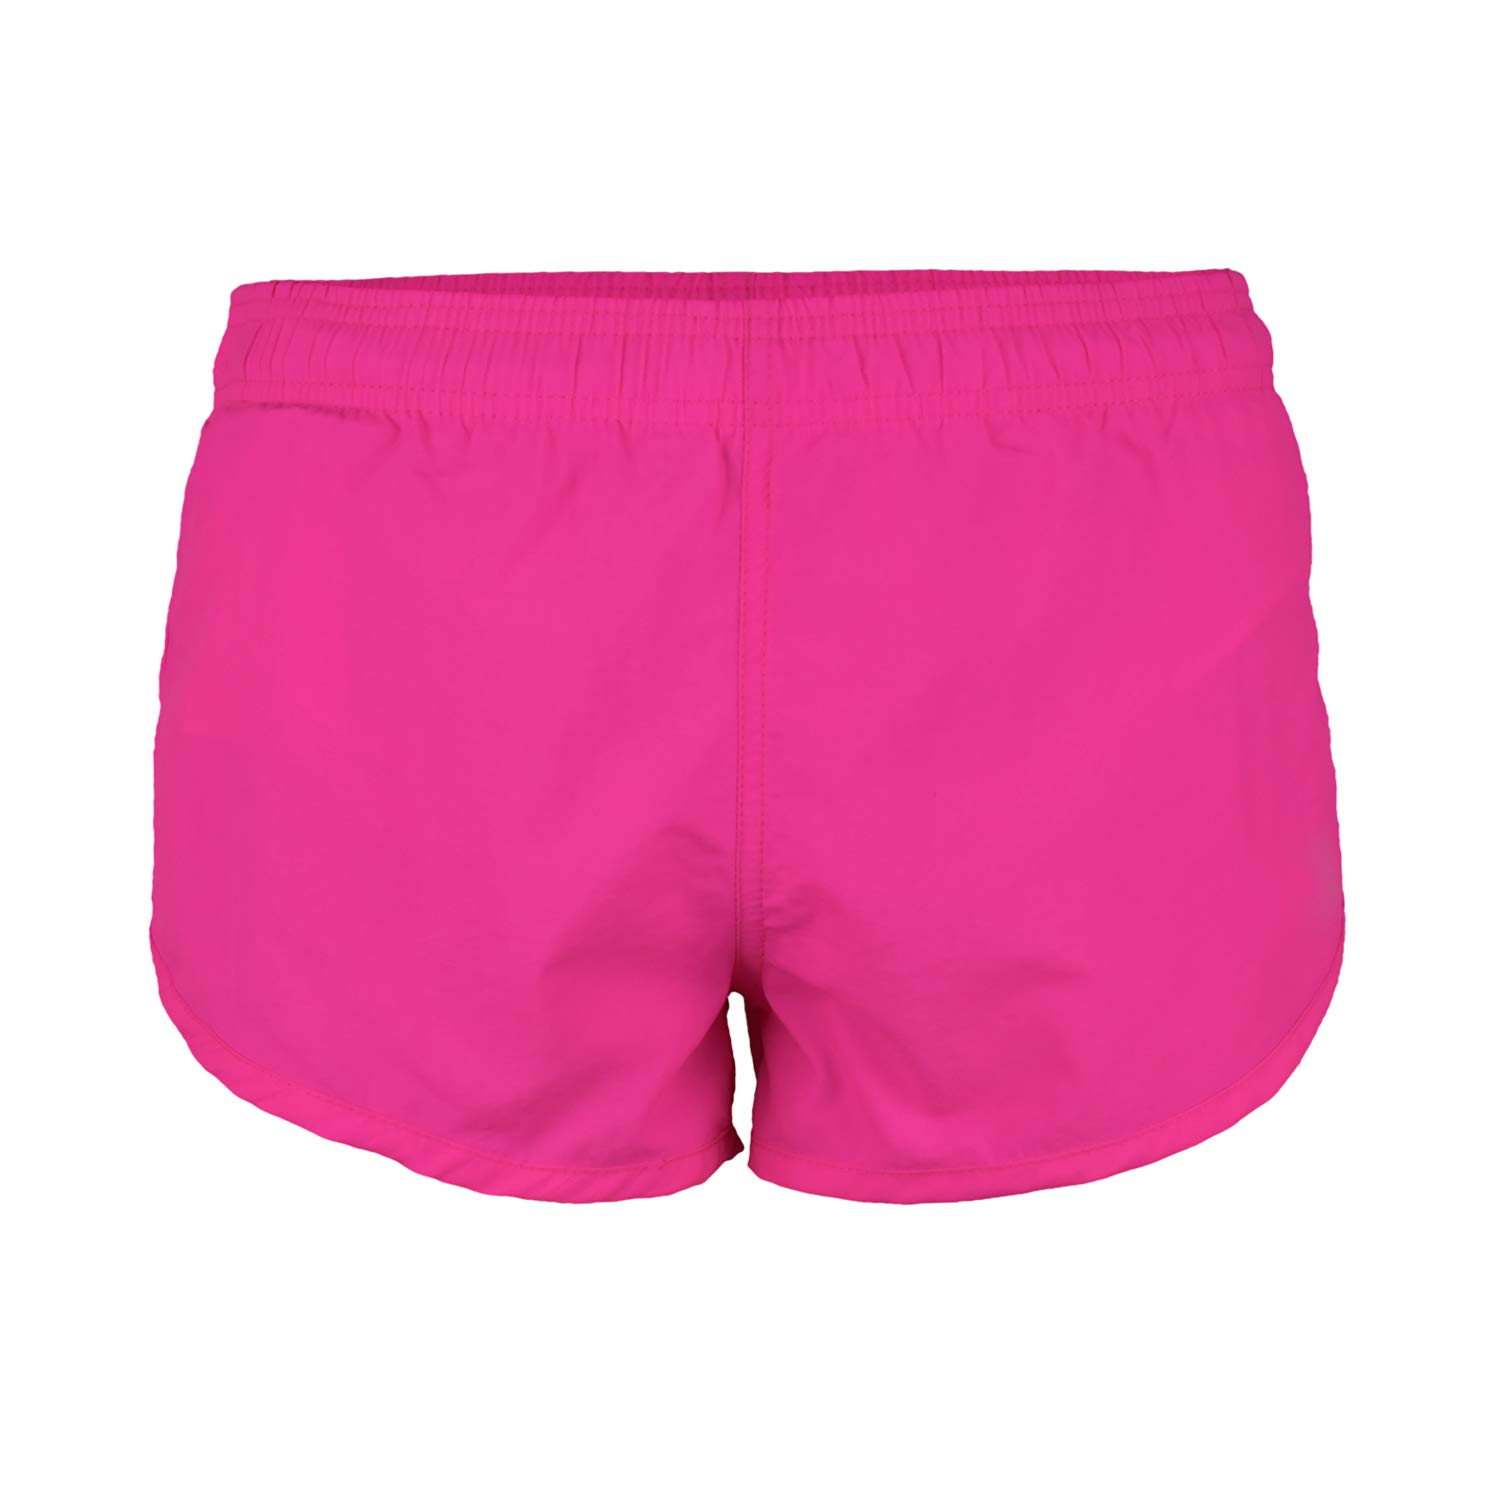 VBRANDED Men's Basic Running Shorts and Swimwear Trunks Neon Pink L by UZZI